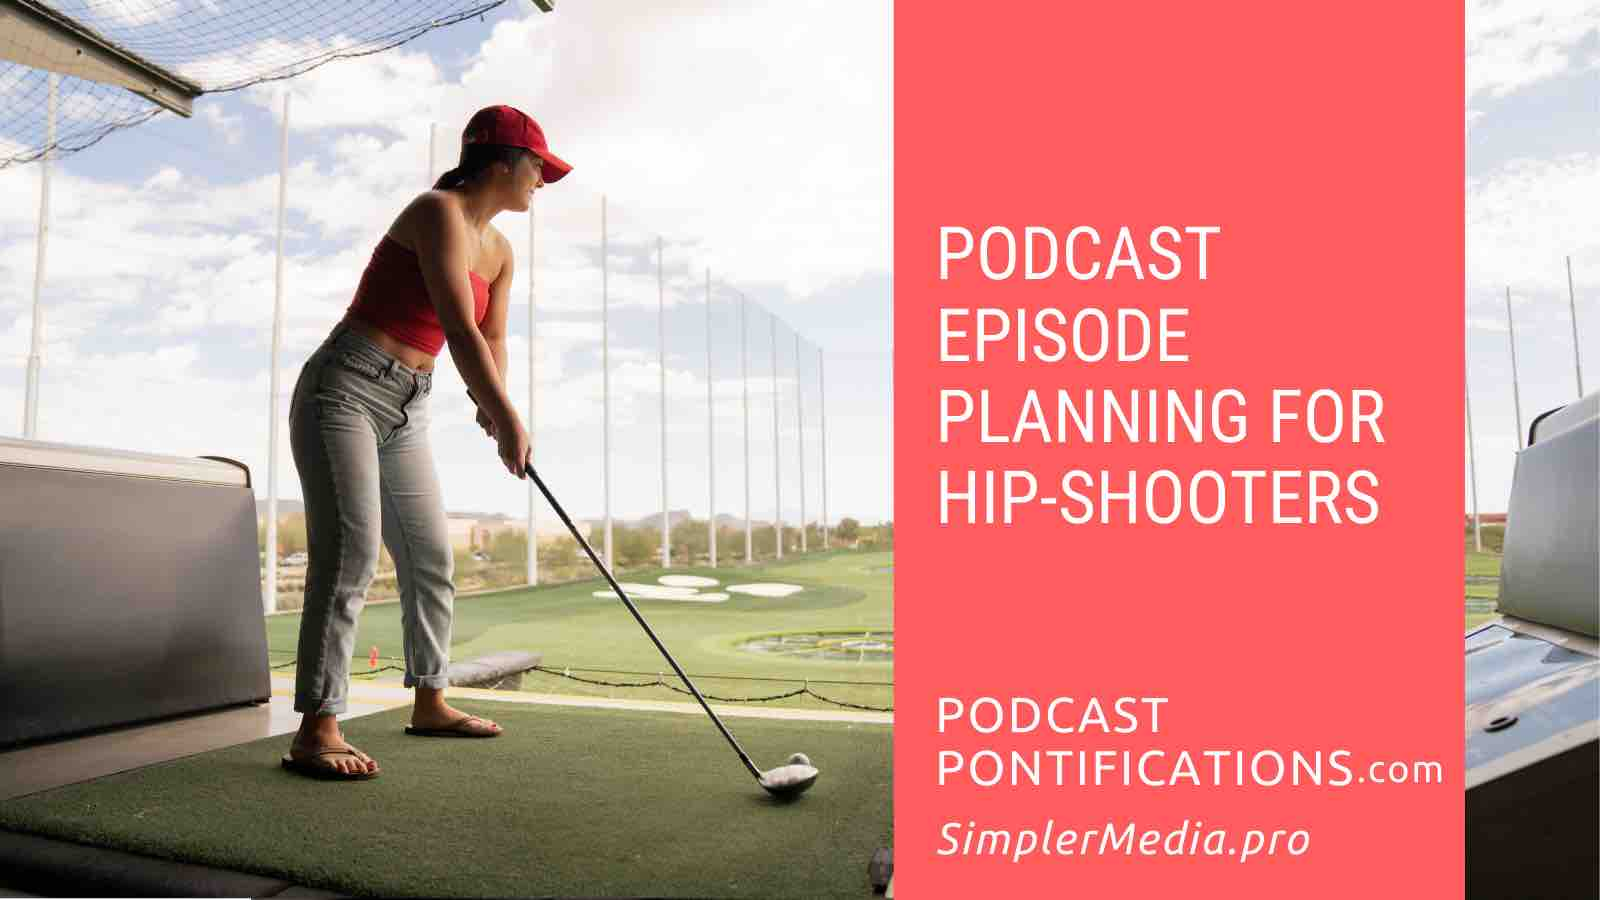 Podcast Episode Planning For Hip-Shooters